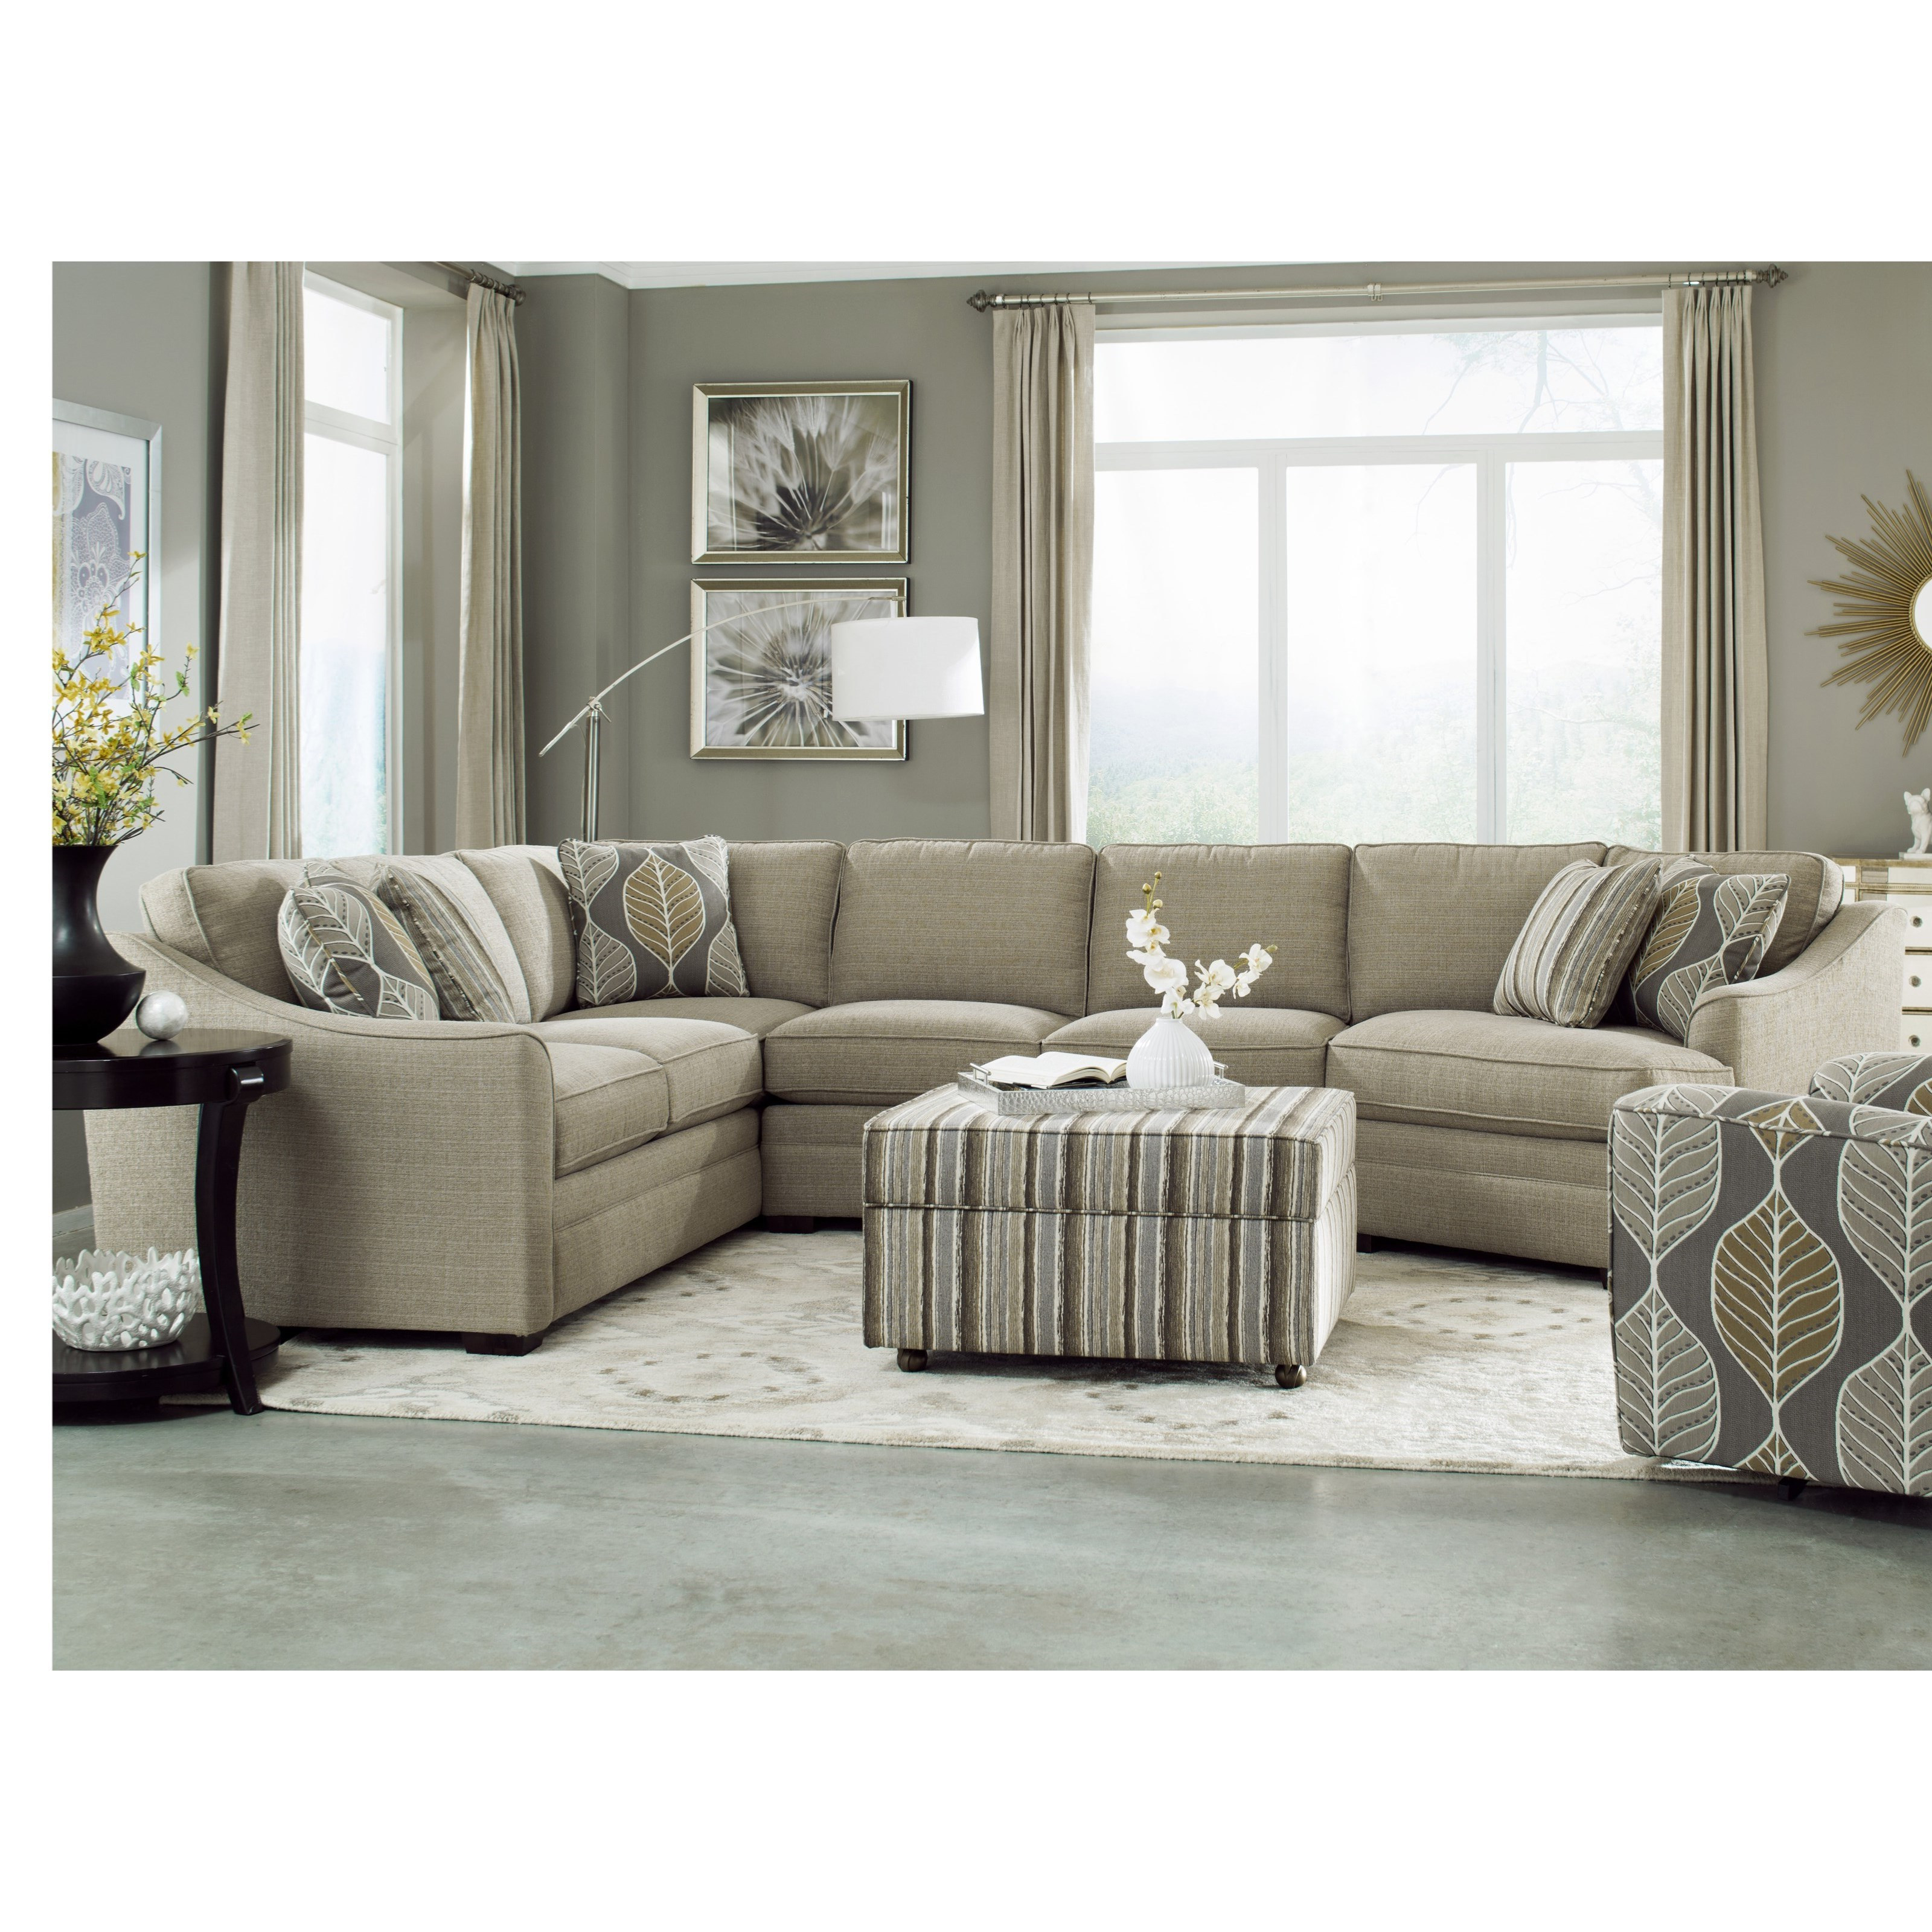 Avery 2 Piece Sectionals With Raf Armless Chaise Within Famous Hickory Craft F9 Custom Collection <b>customizable</b> 3 Piece (View 16 of 20)